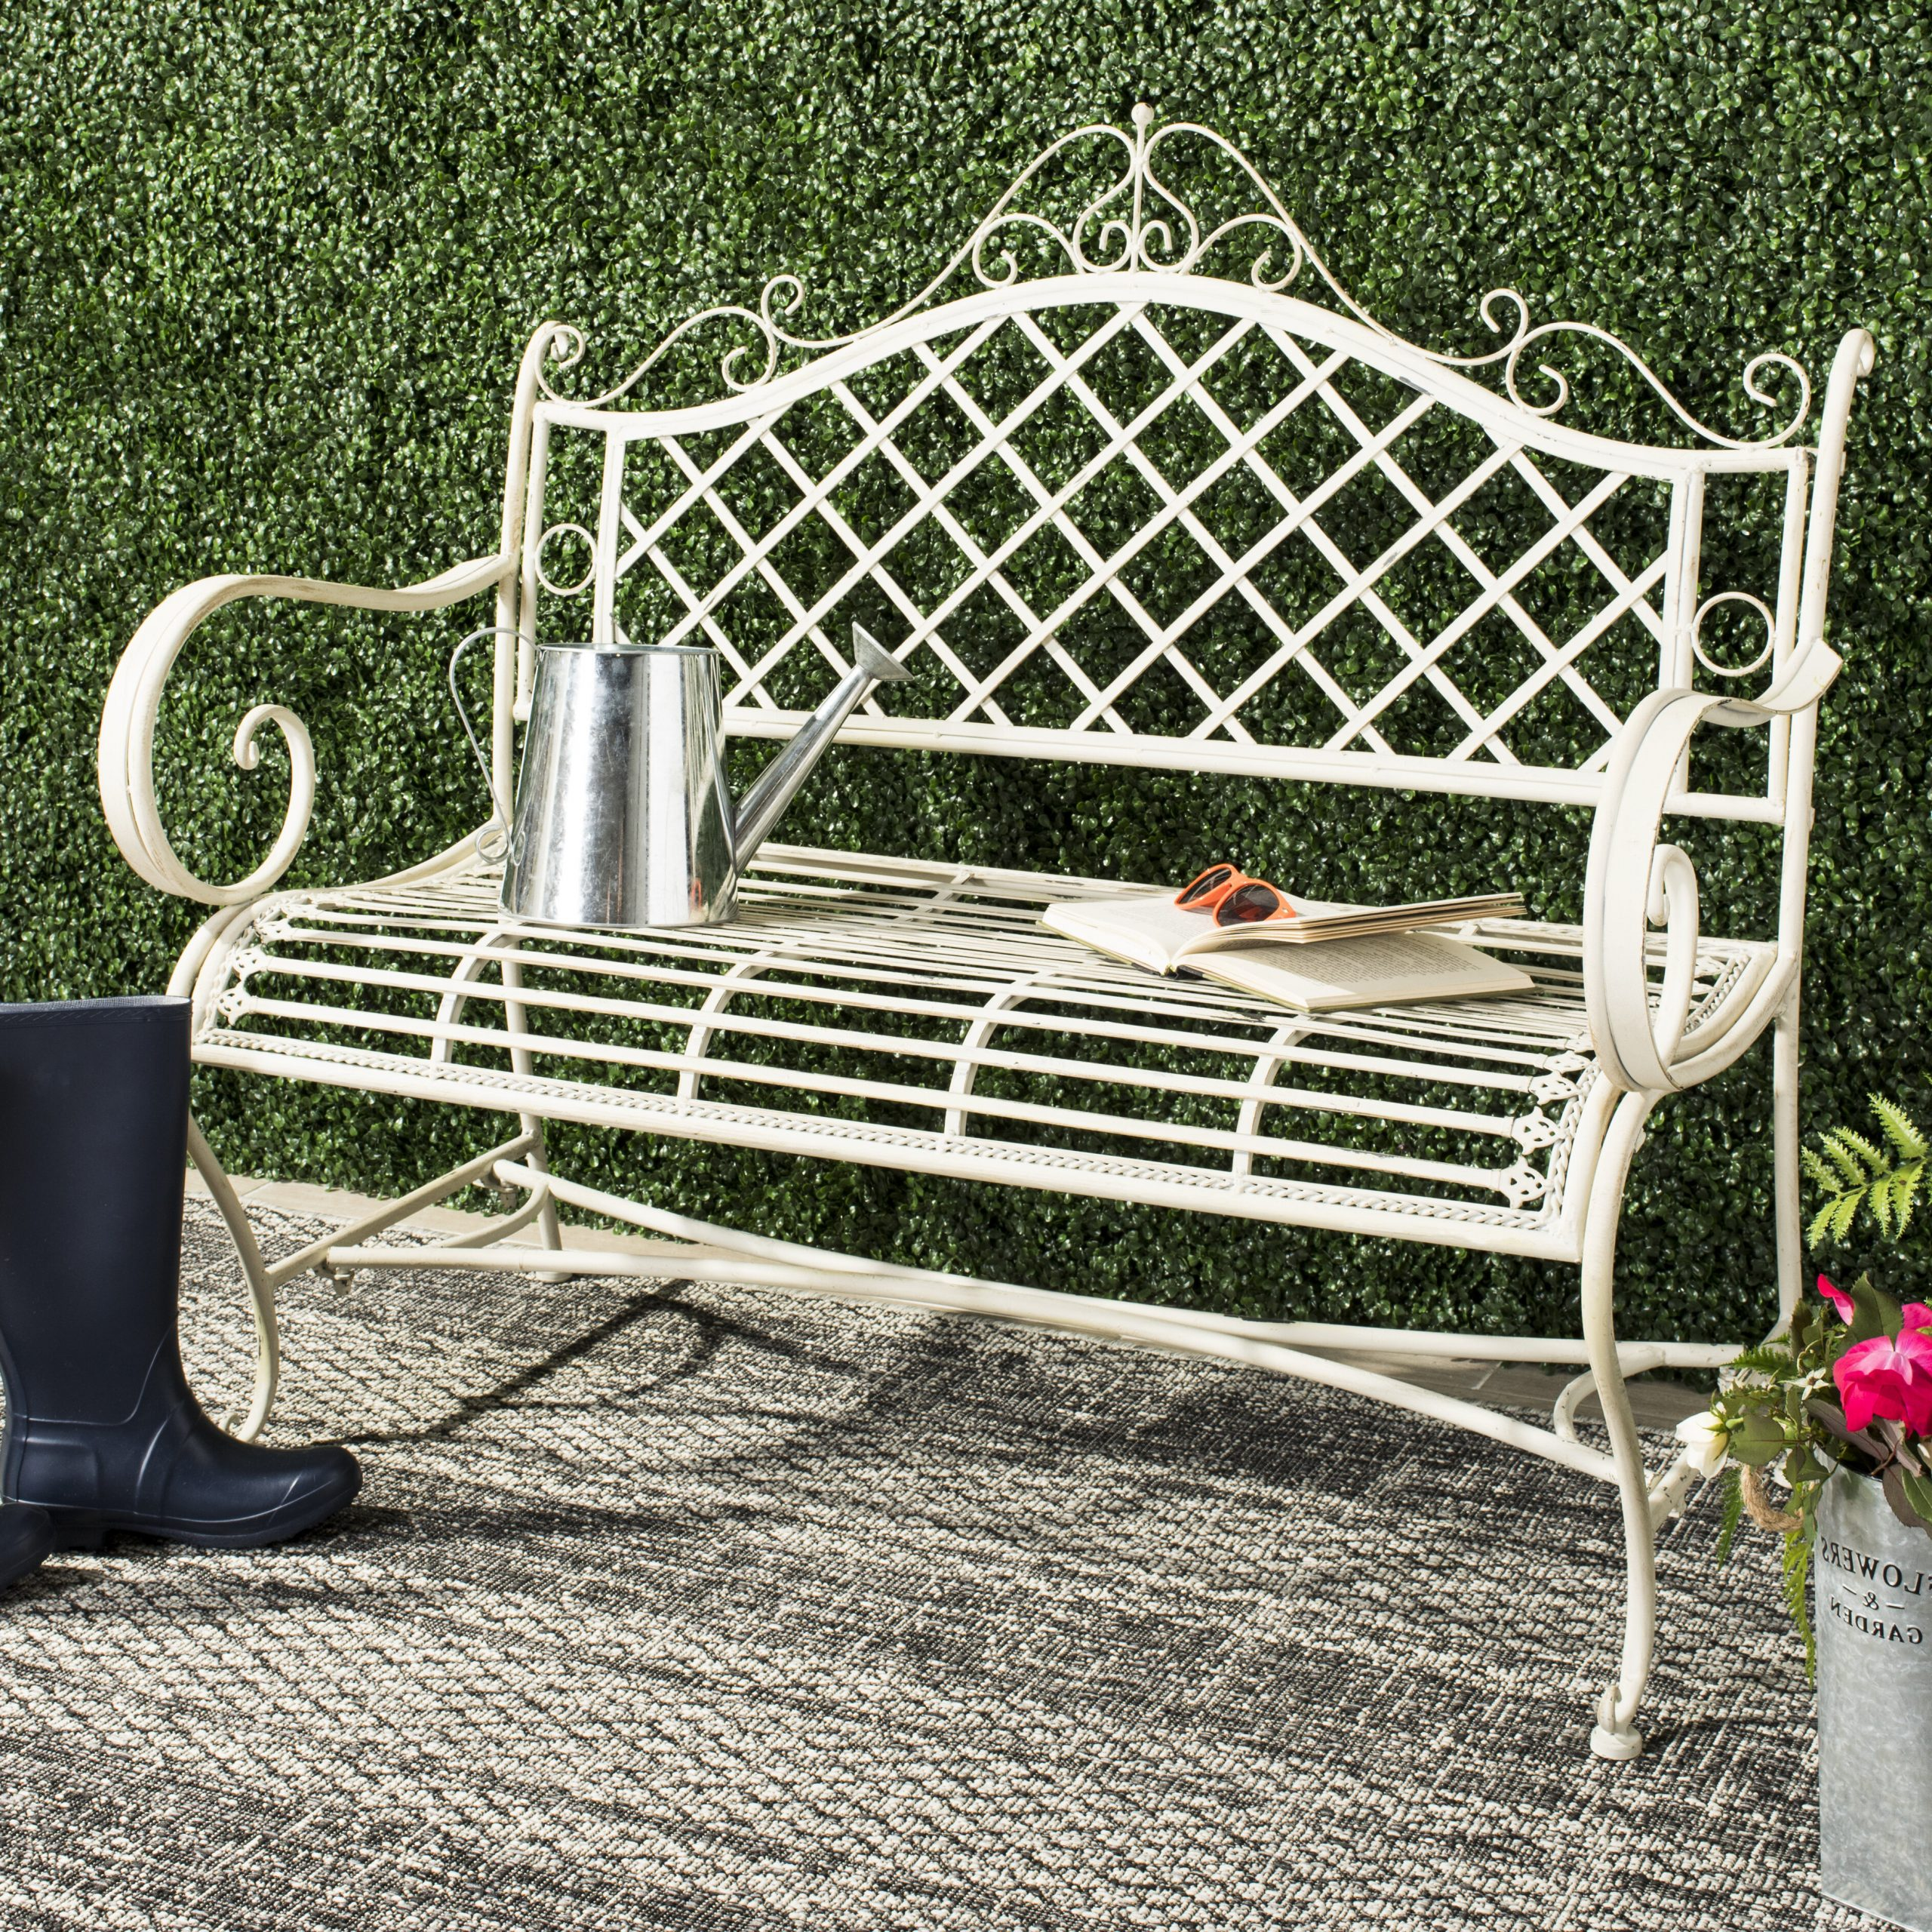 Hornellsville Wrought Iron Garden Bench Pertaining To Preferred Blooming Iron Garden Benches (View 13 of 30)